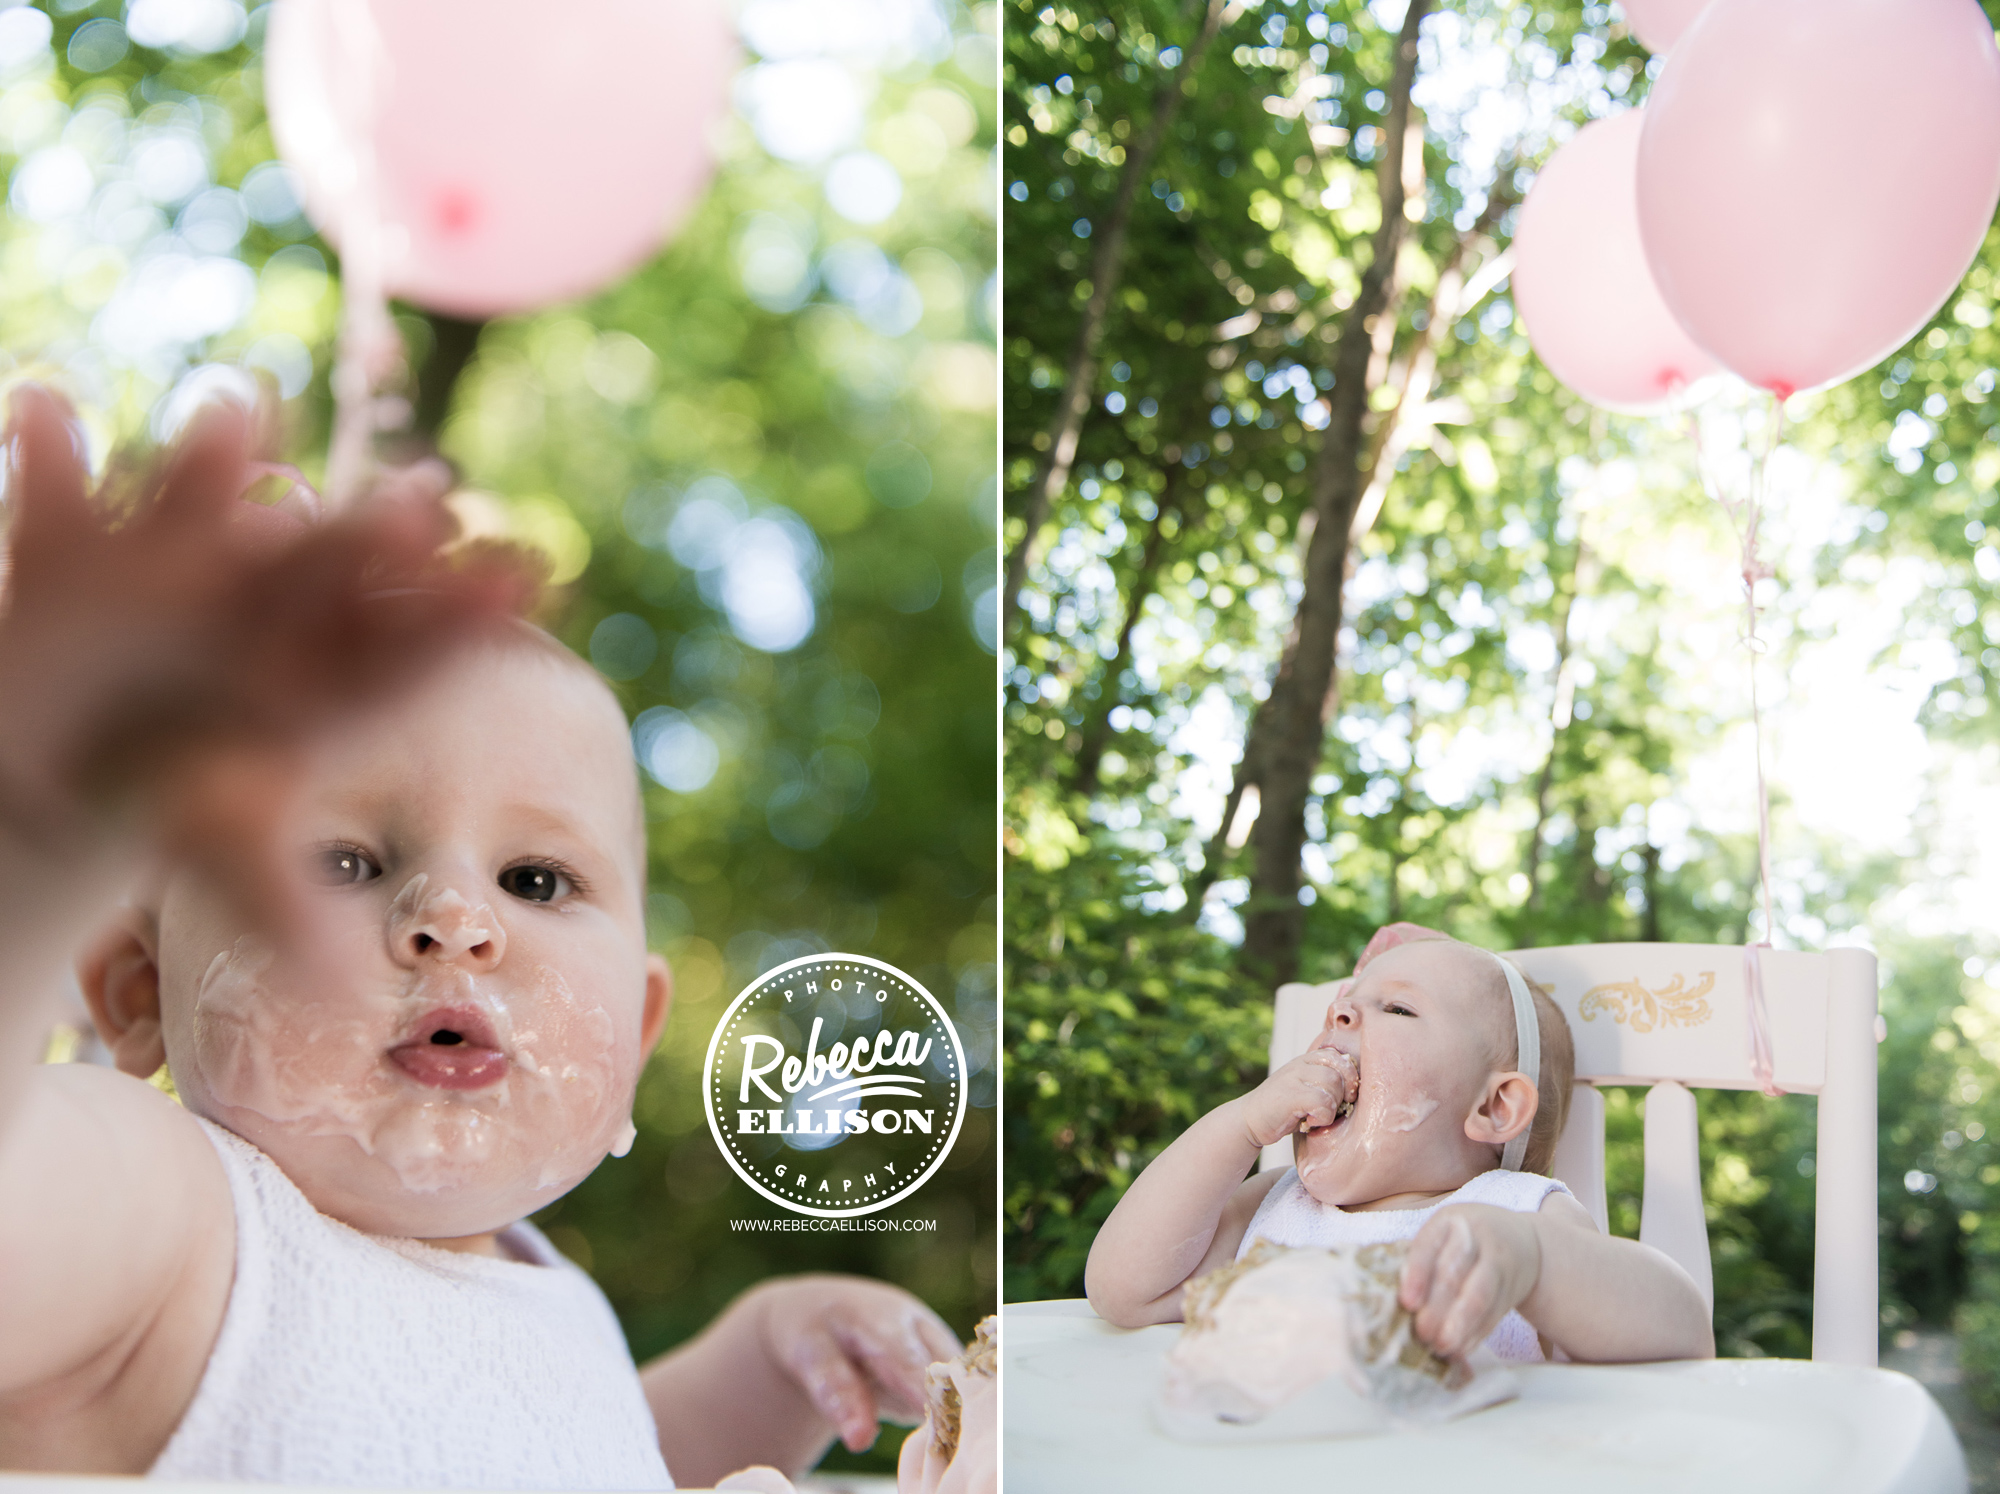 First taste of cake for a 1 year old girl at an outdoor family photo shoot in Carkeek Park by Seattle Family photographer Rebecca Ellison